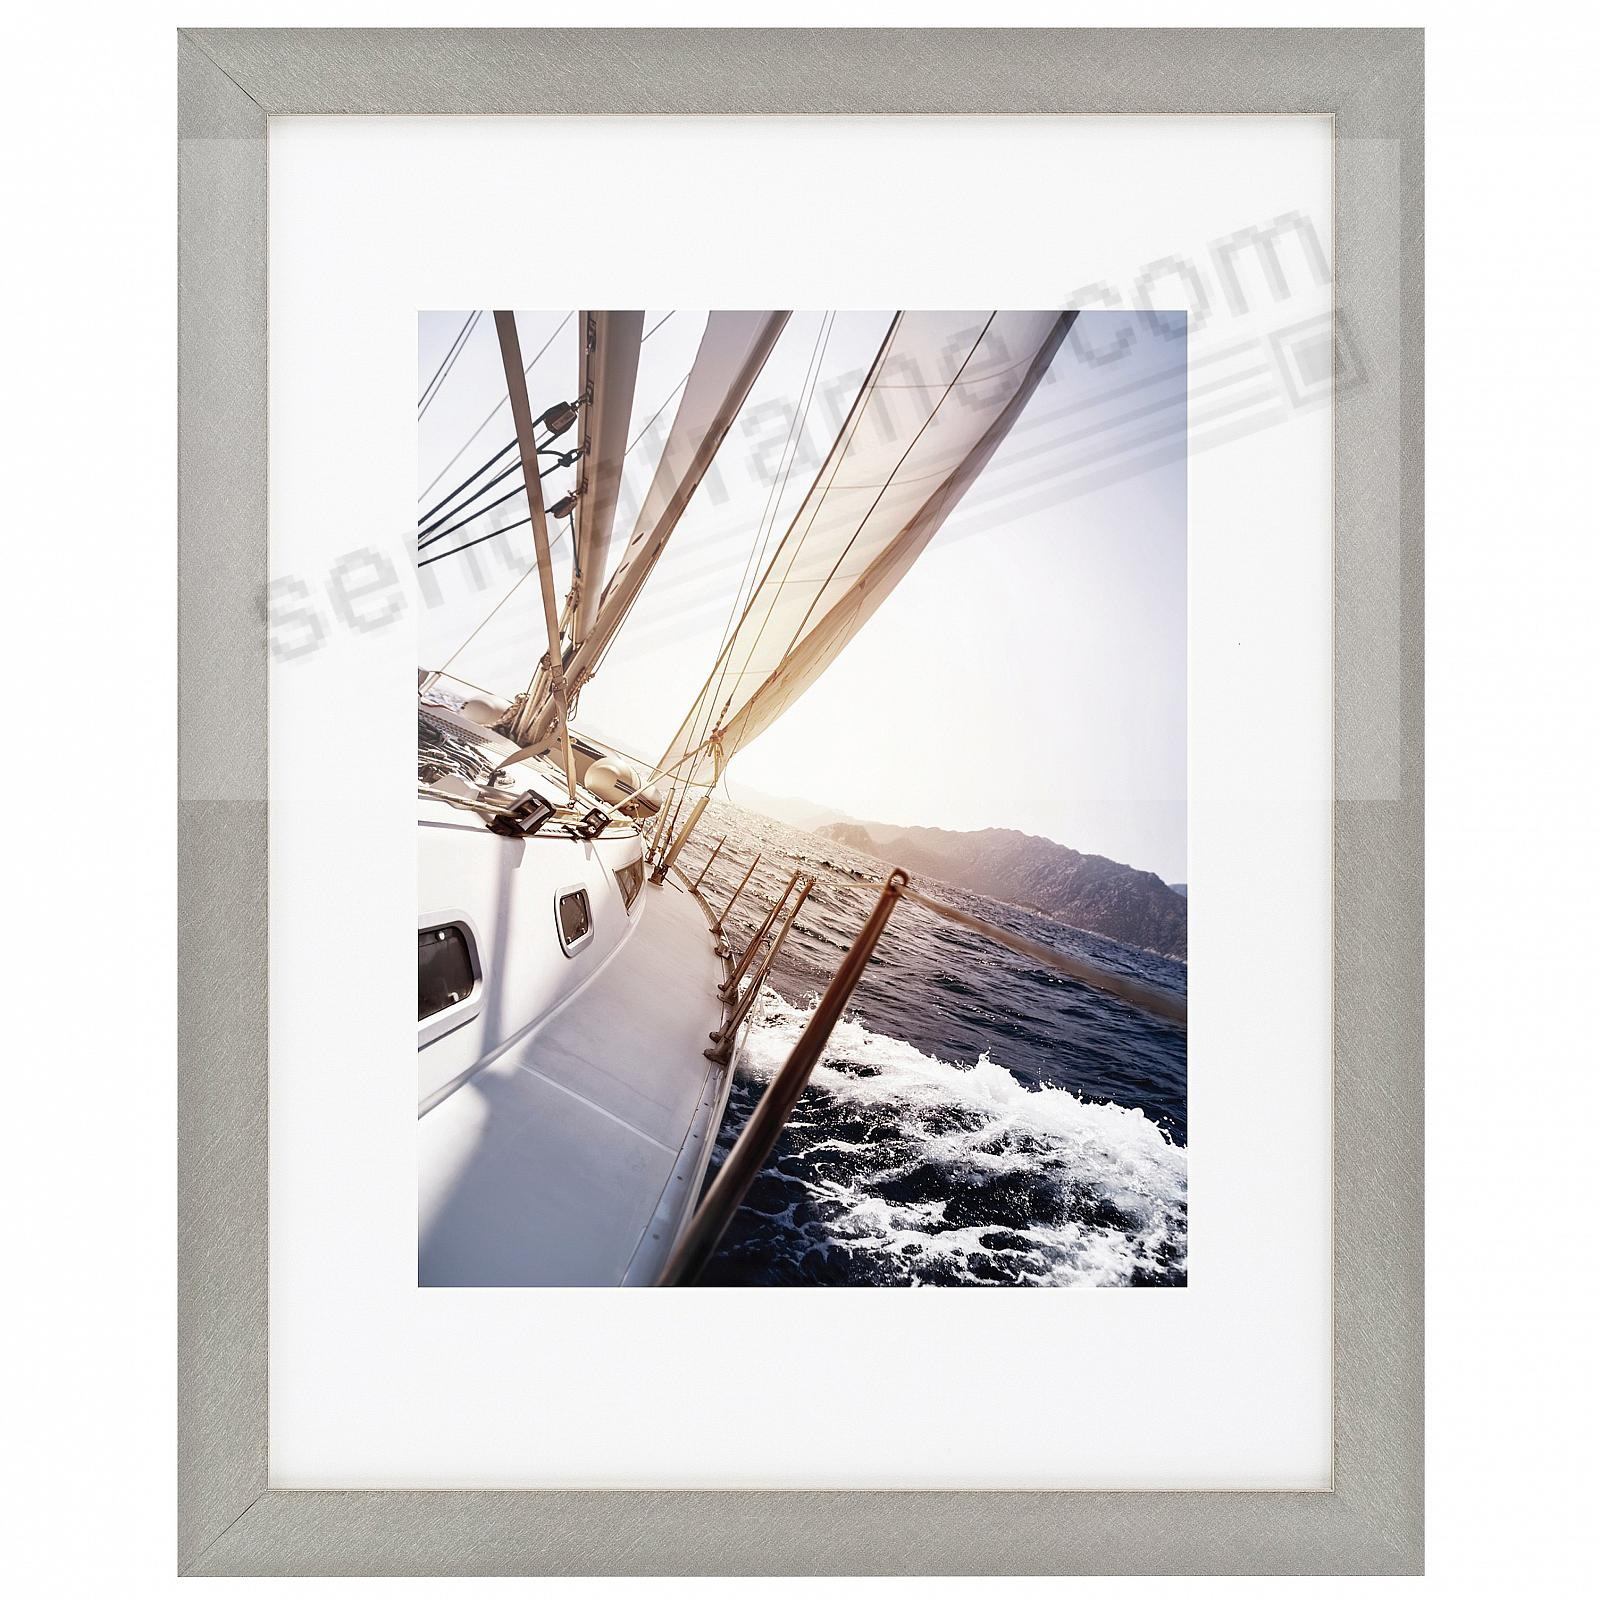 Tuscany Florentine Silver Metallic Frame Matted 11x148x10 By